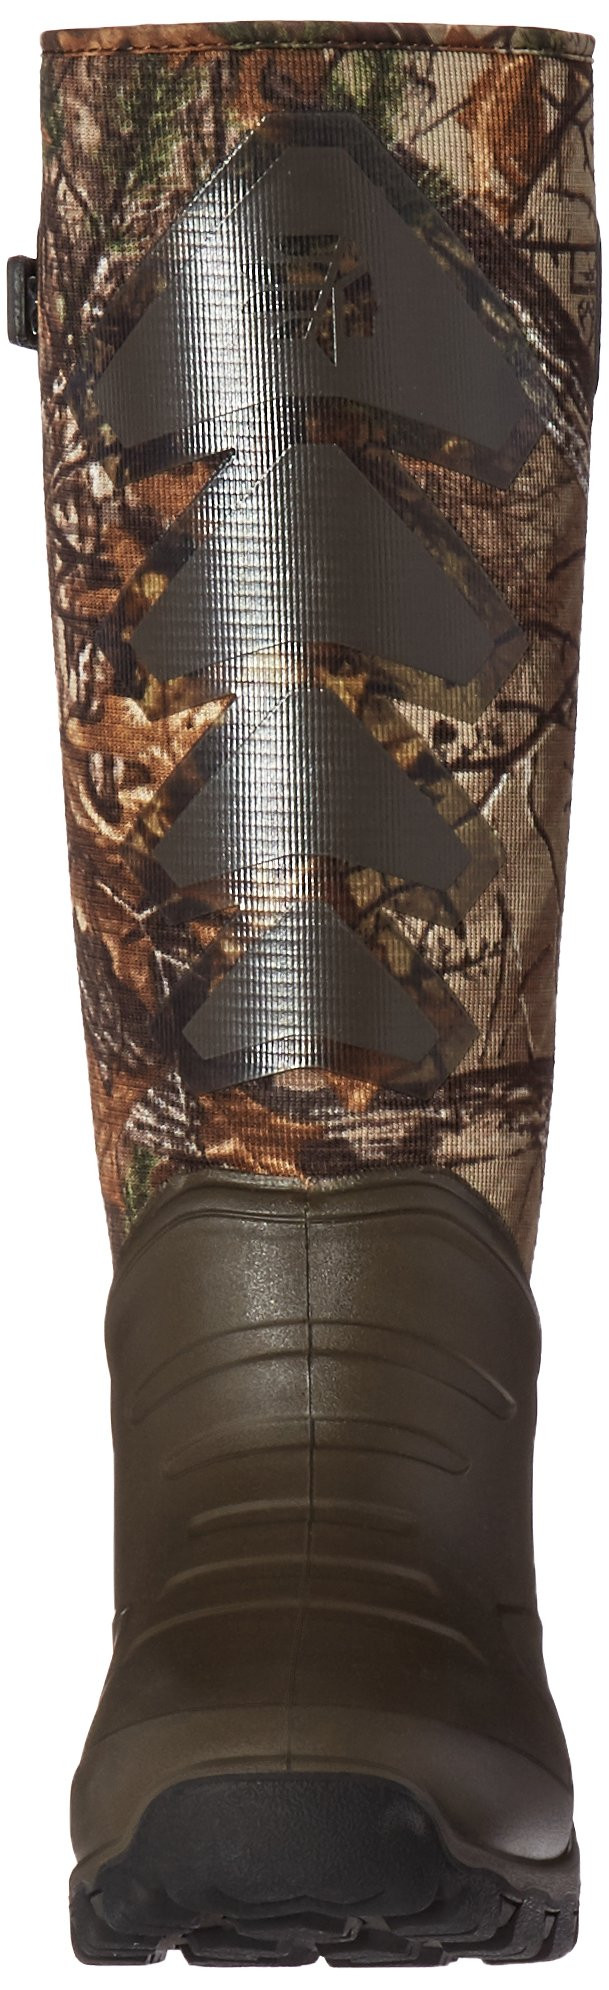 Lacrosse Men's Aerohead Sport 16'' 3.5MM Hunting Shoes Realtree Extra 13 M US by Lacrosse (Image #4)